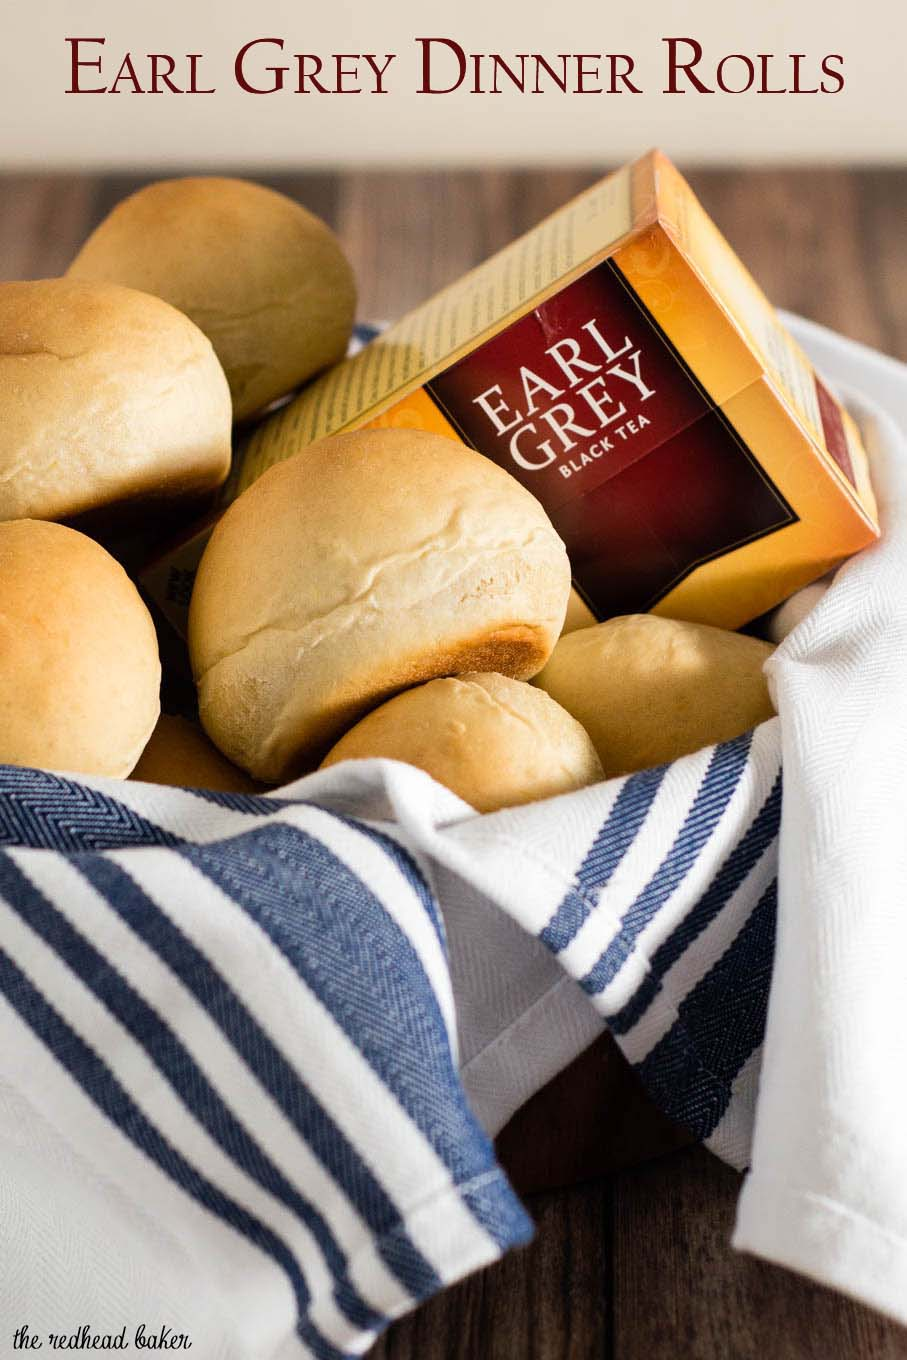 Earl grey dinner rolls are infused with earl grey tea, with subtle flavors of bergamot and lemon. Serve warm with a pat of salted butter.